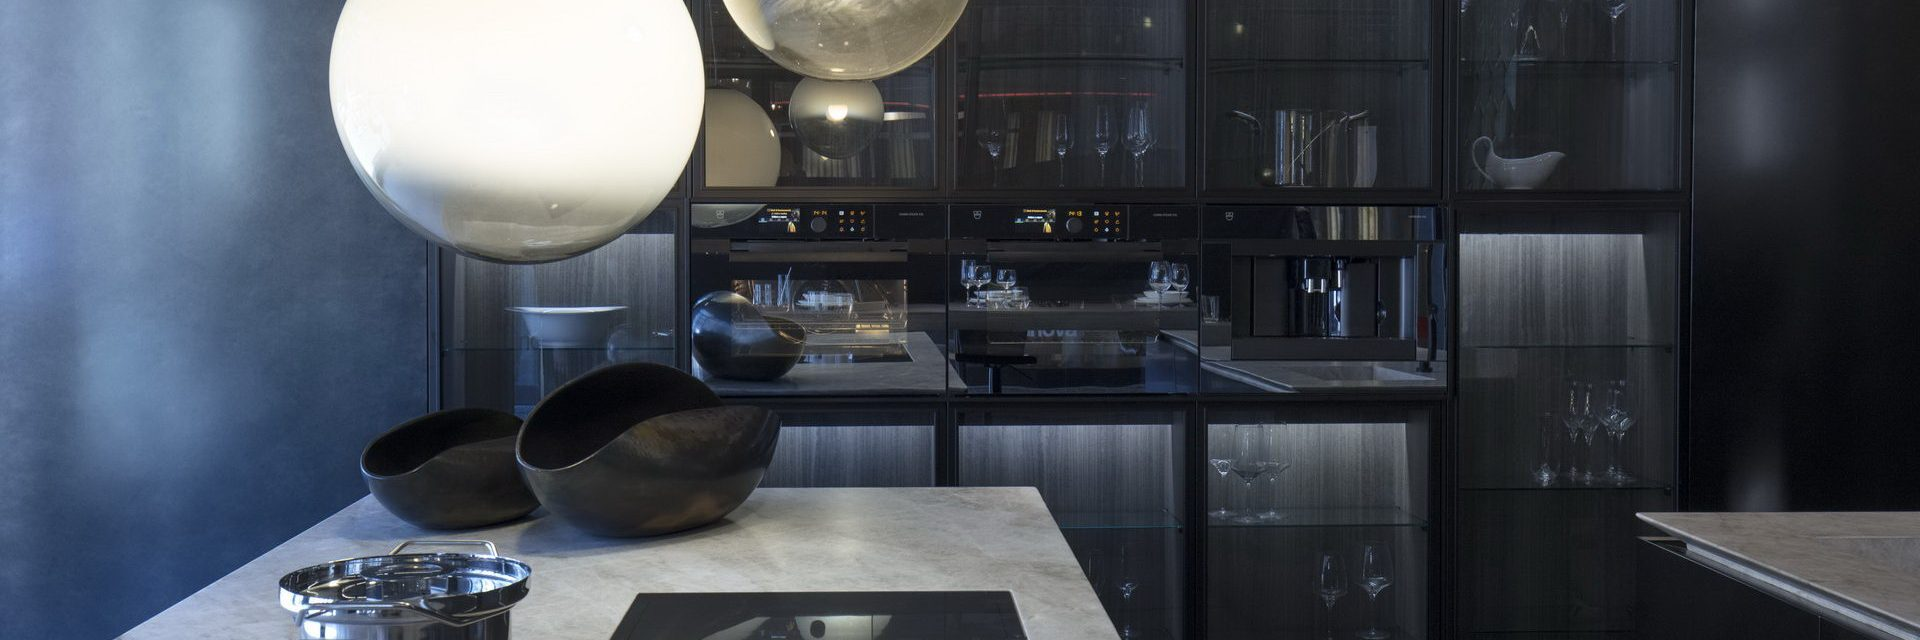 Cucine Moderne di Design Made in Italy - Binova Milano - Via Durini